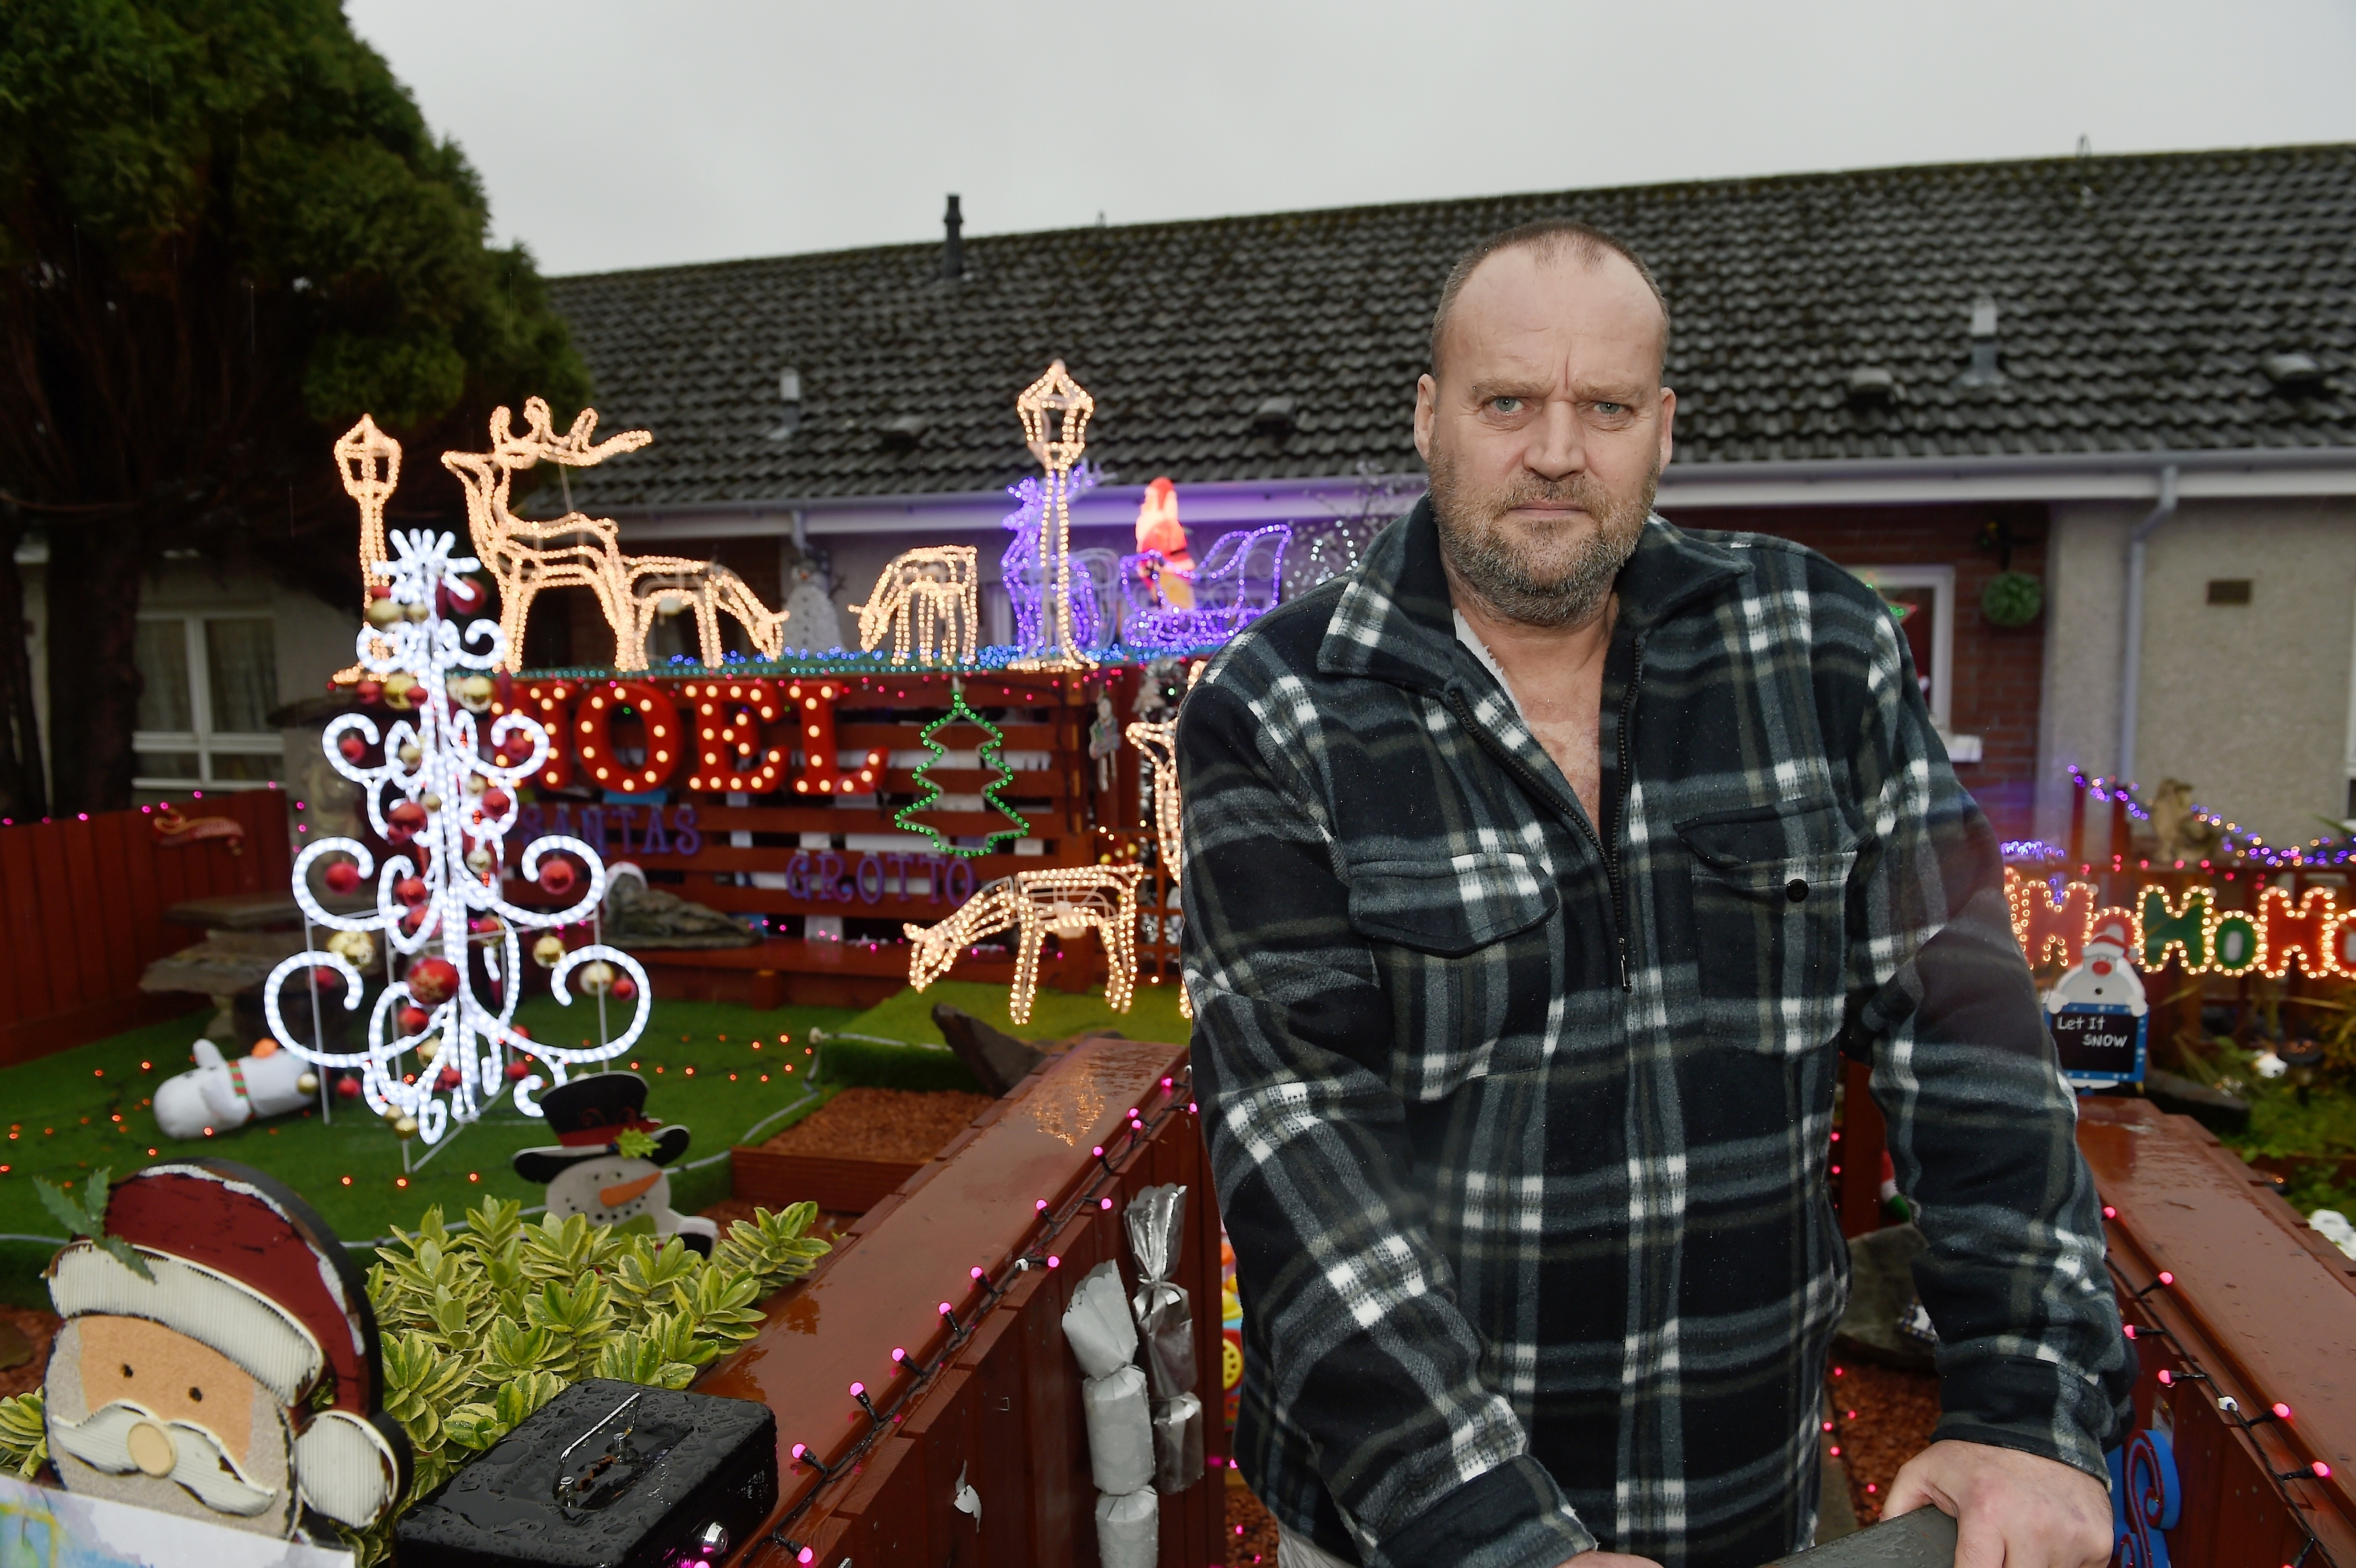 Robert Russell of Oldtown Road, Inverness has had his garden Santas Grotto shut down by Highland Council.